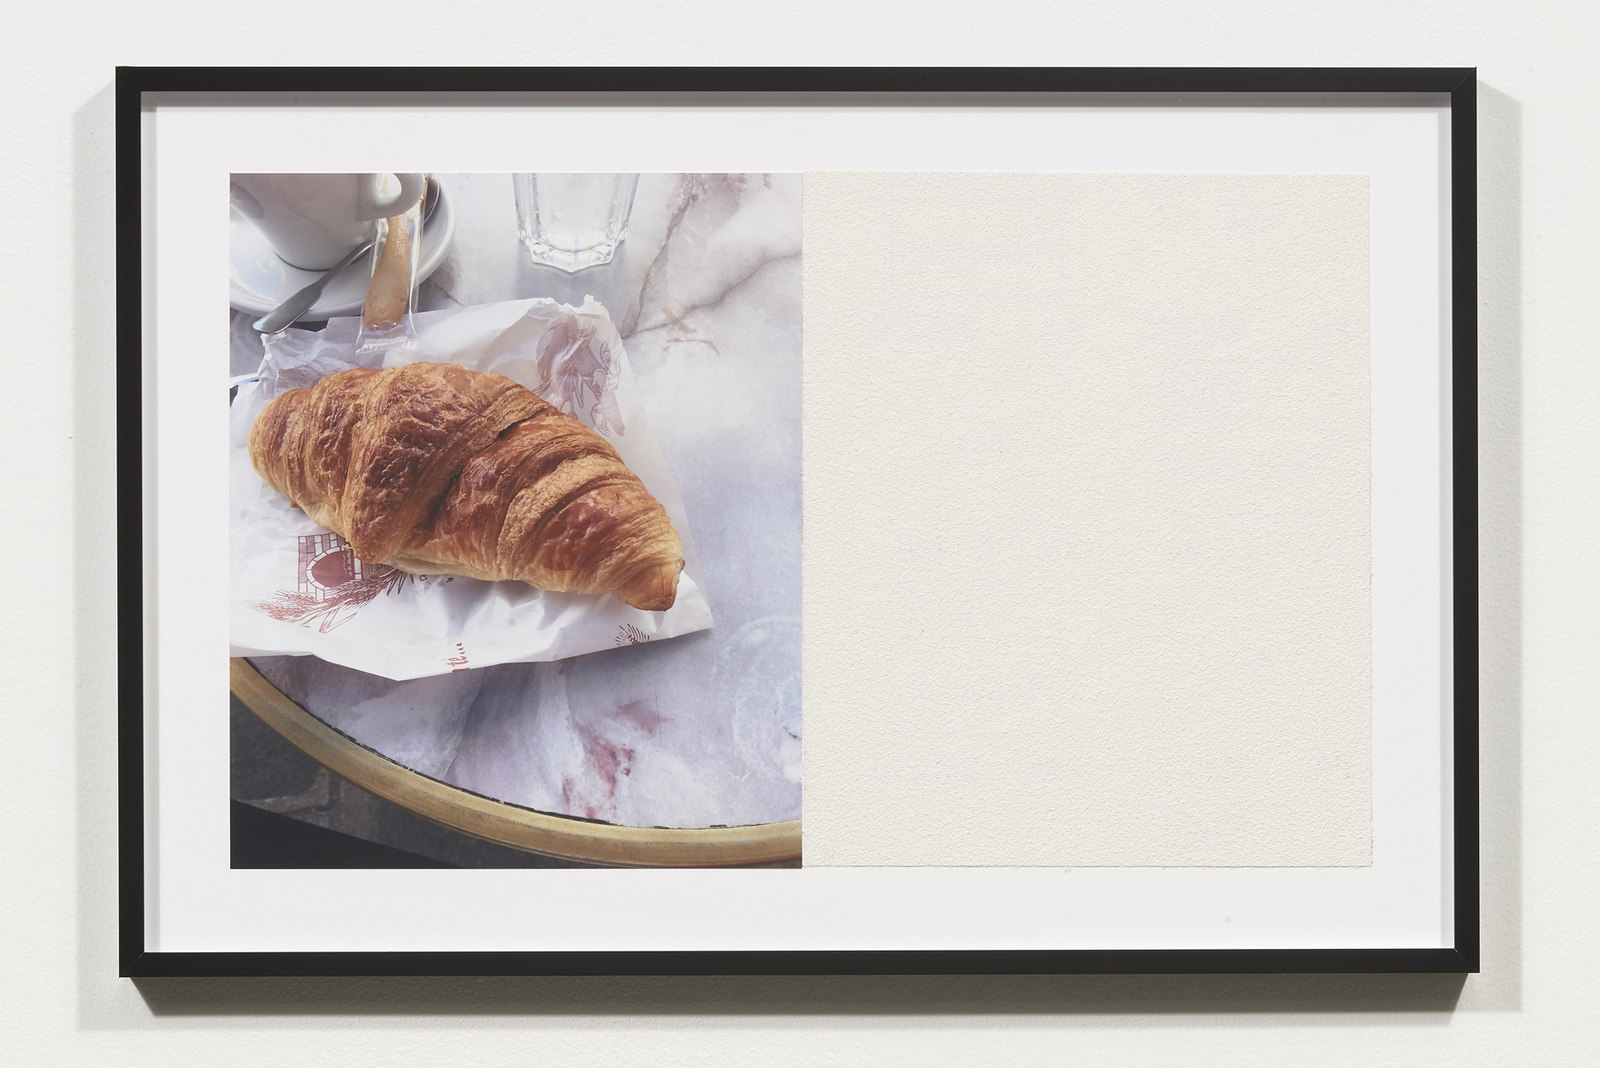 Wermers_Croissants & Architecture #27, 2016_C-print, sandpaper sheet, framed_14 3_8 x 21 1_2 in_NW00068PG